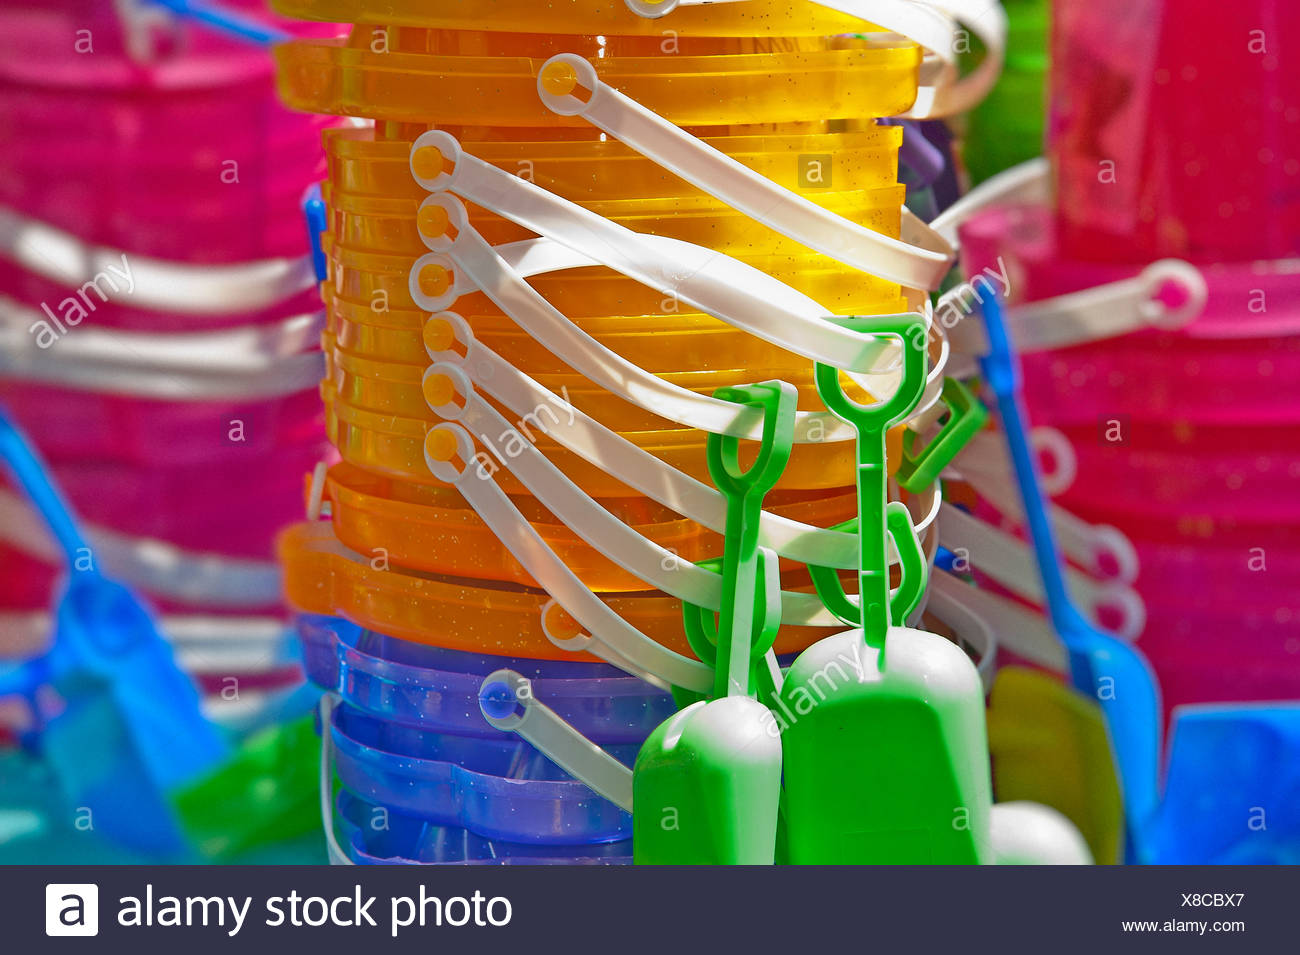 Kids toy pail and shovel. - Stock Image